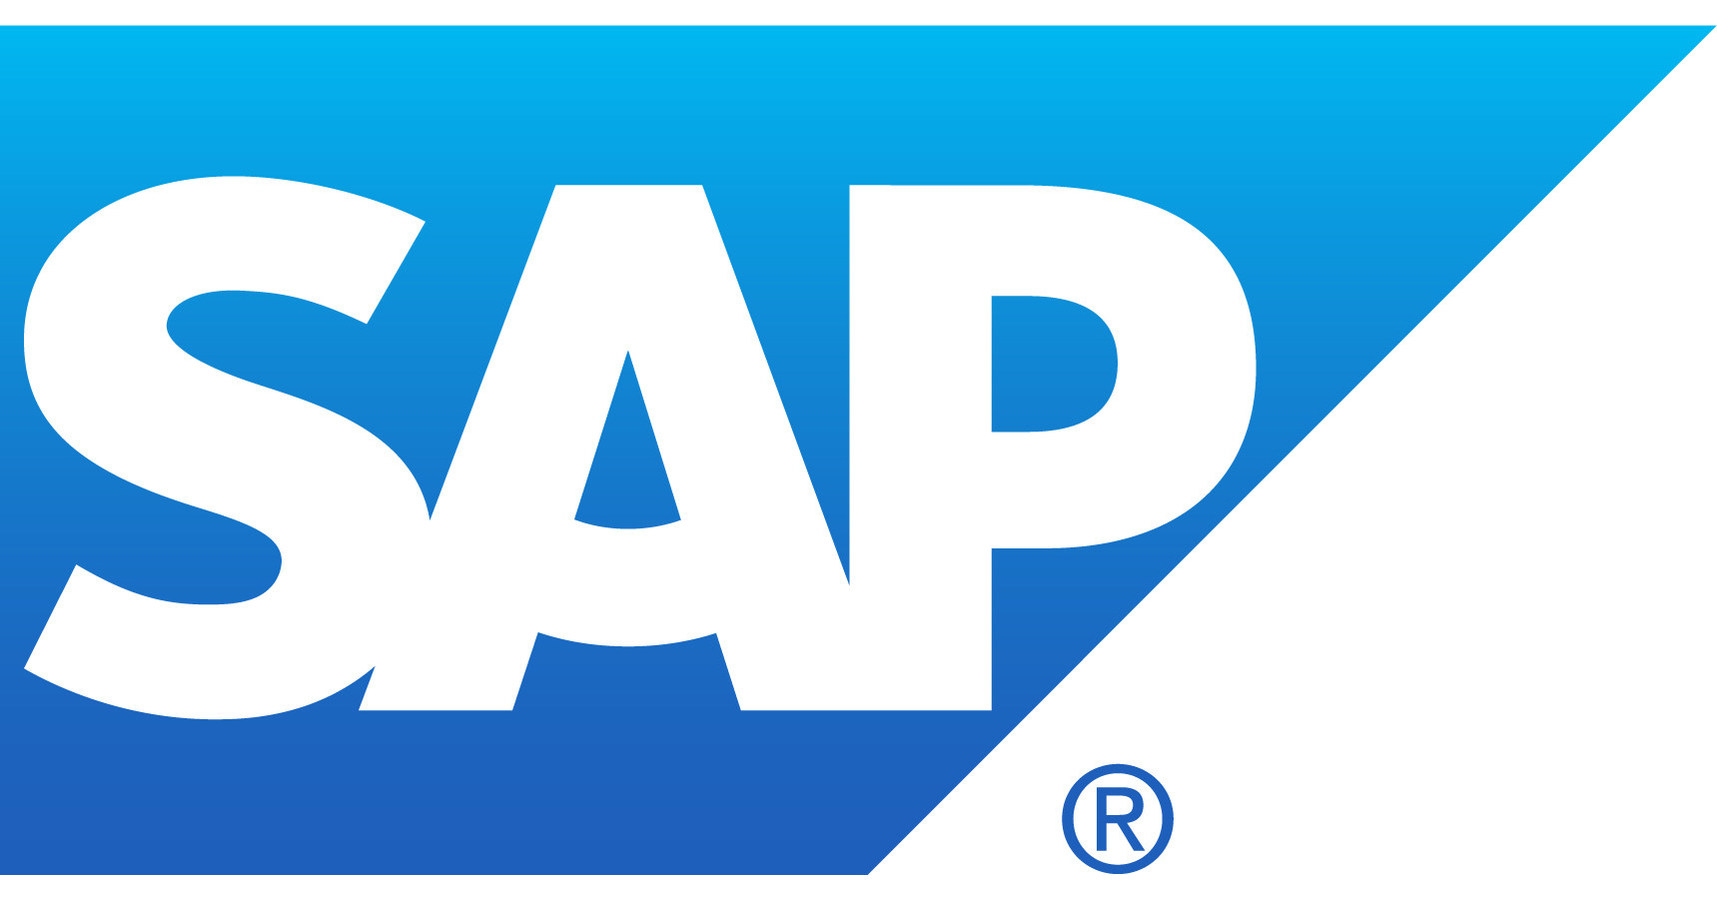 Latest Version of SAP HANA® Empowers All Business Users to Make